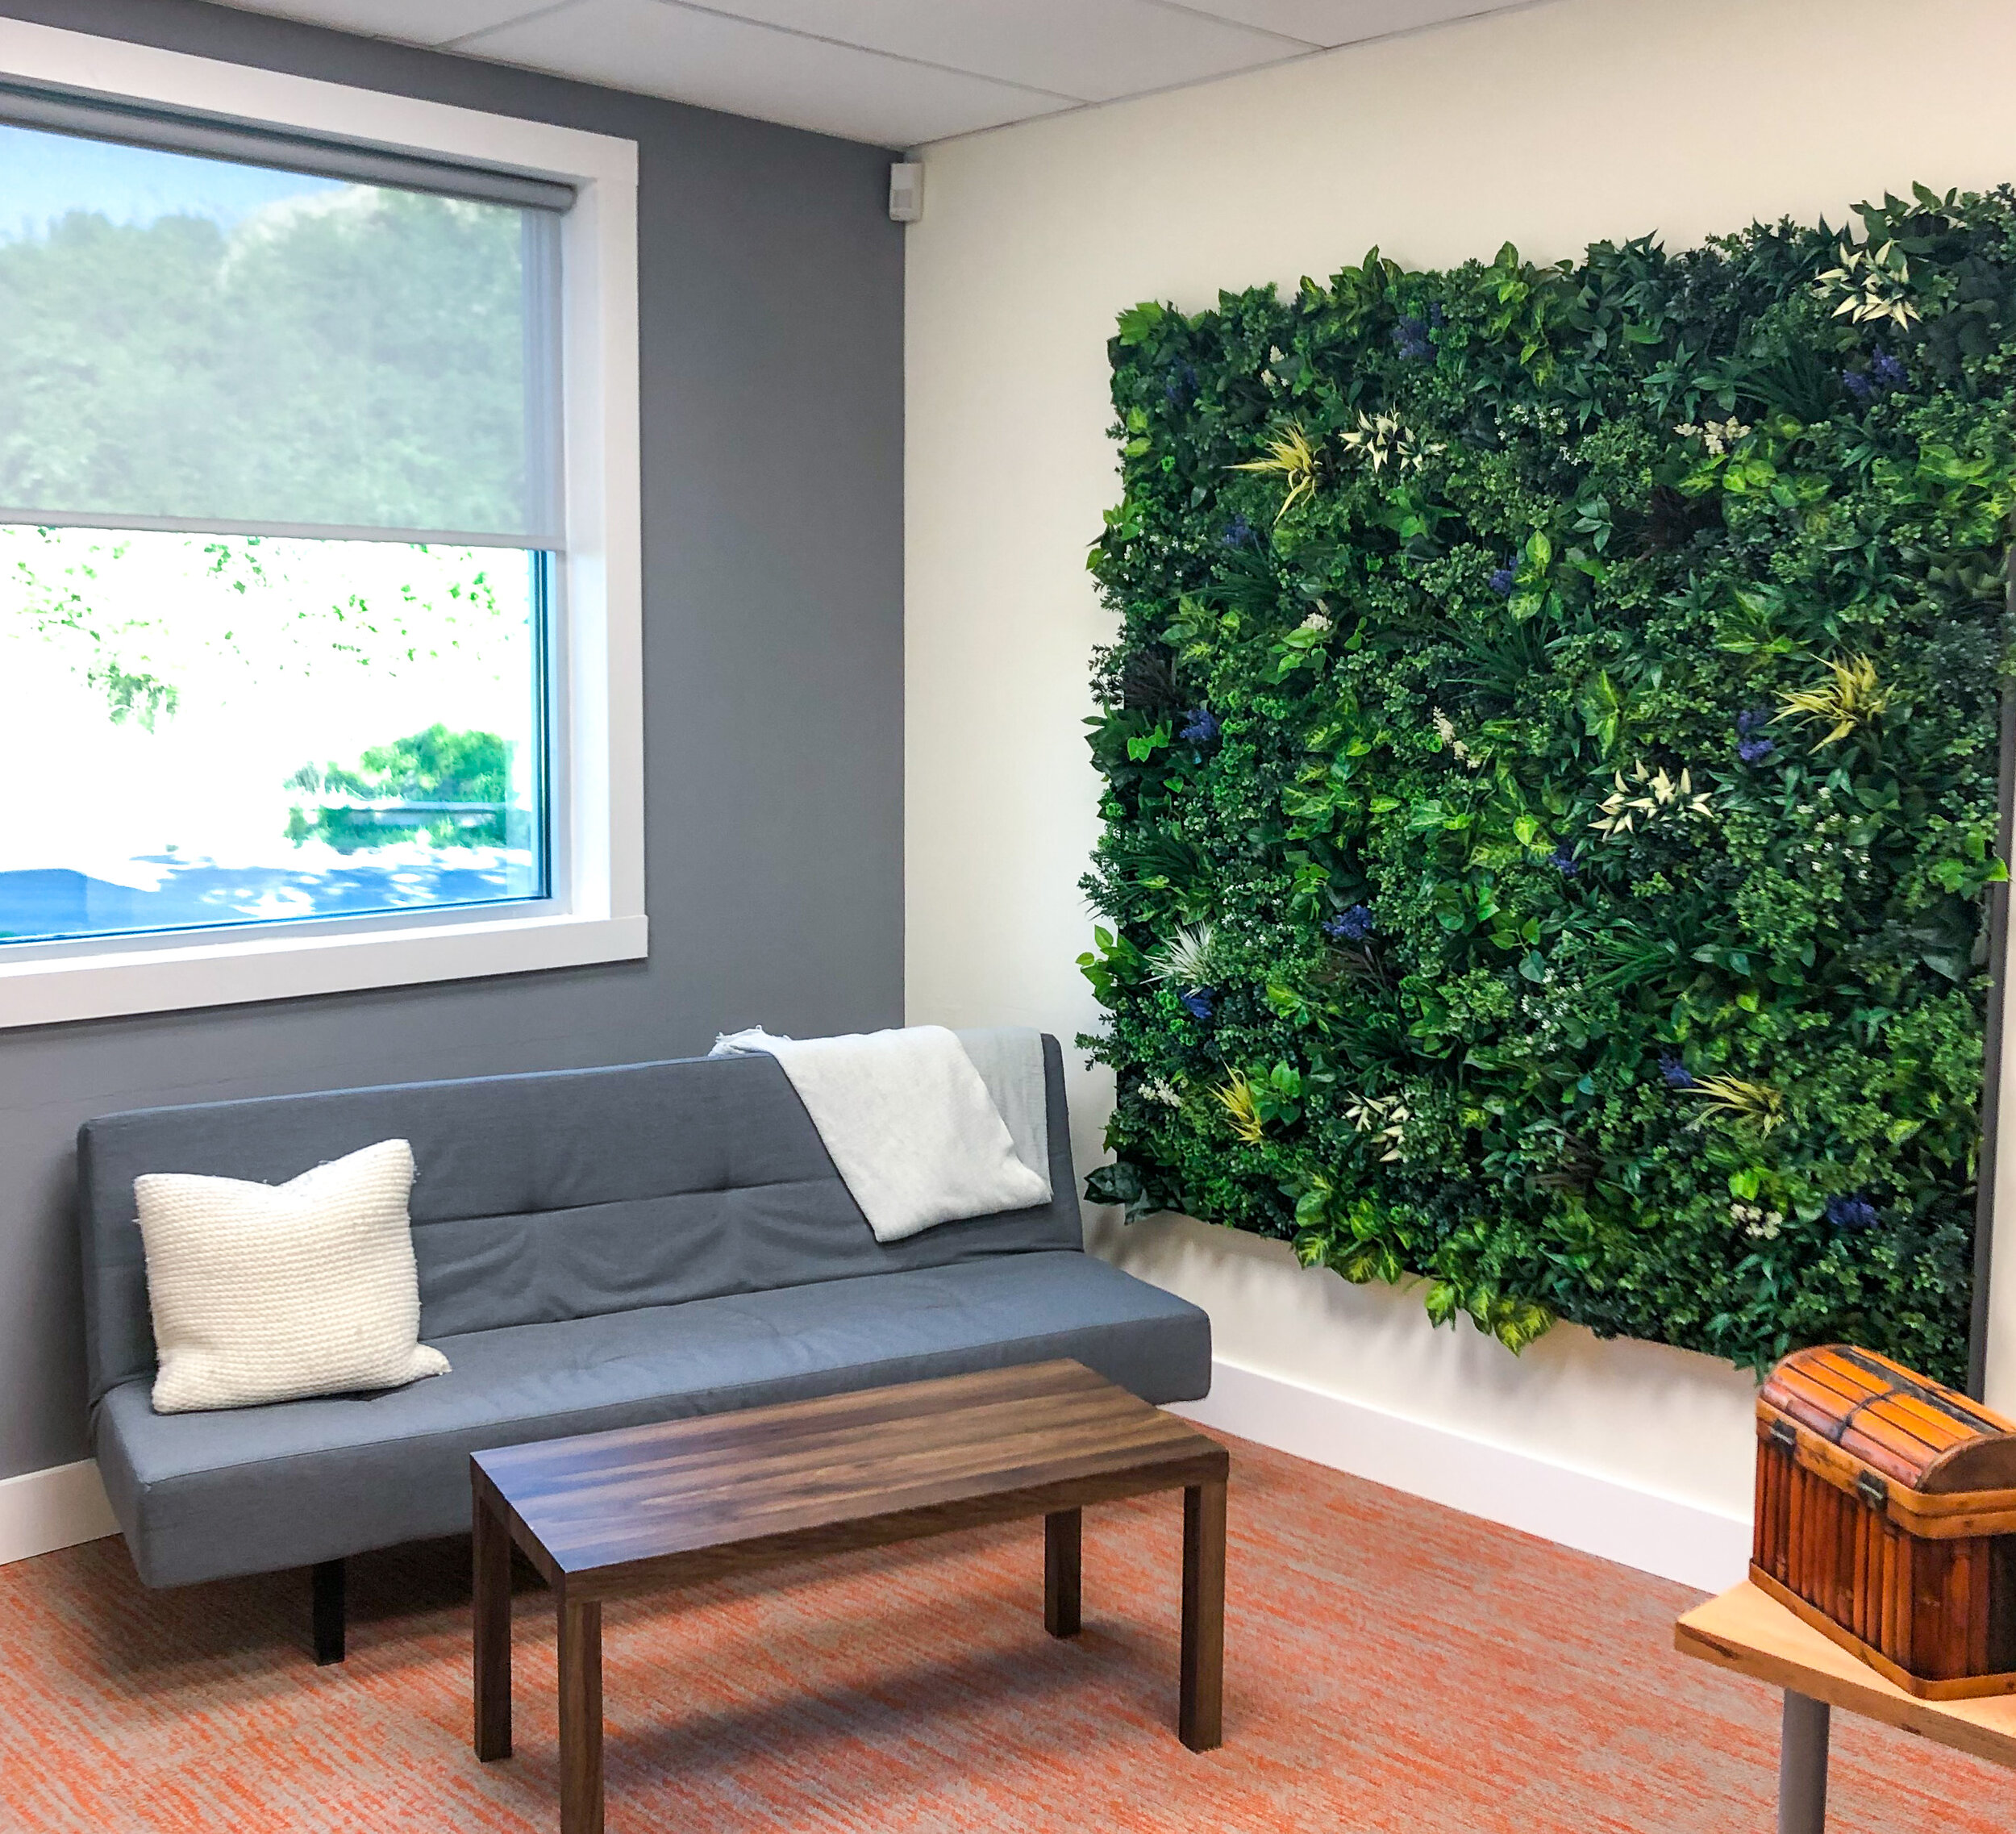 Leafy ALW Panels with Optional Colorful Plants  A 6'x6' artificial living wall installation at our office in Charlotte, NC. Several varieties of colorful plants were added to these Leafy Panels.